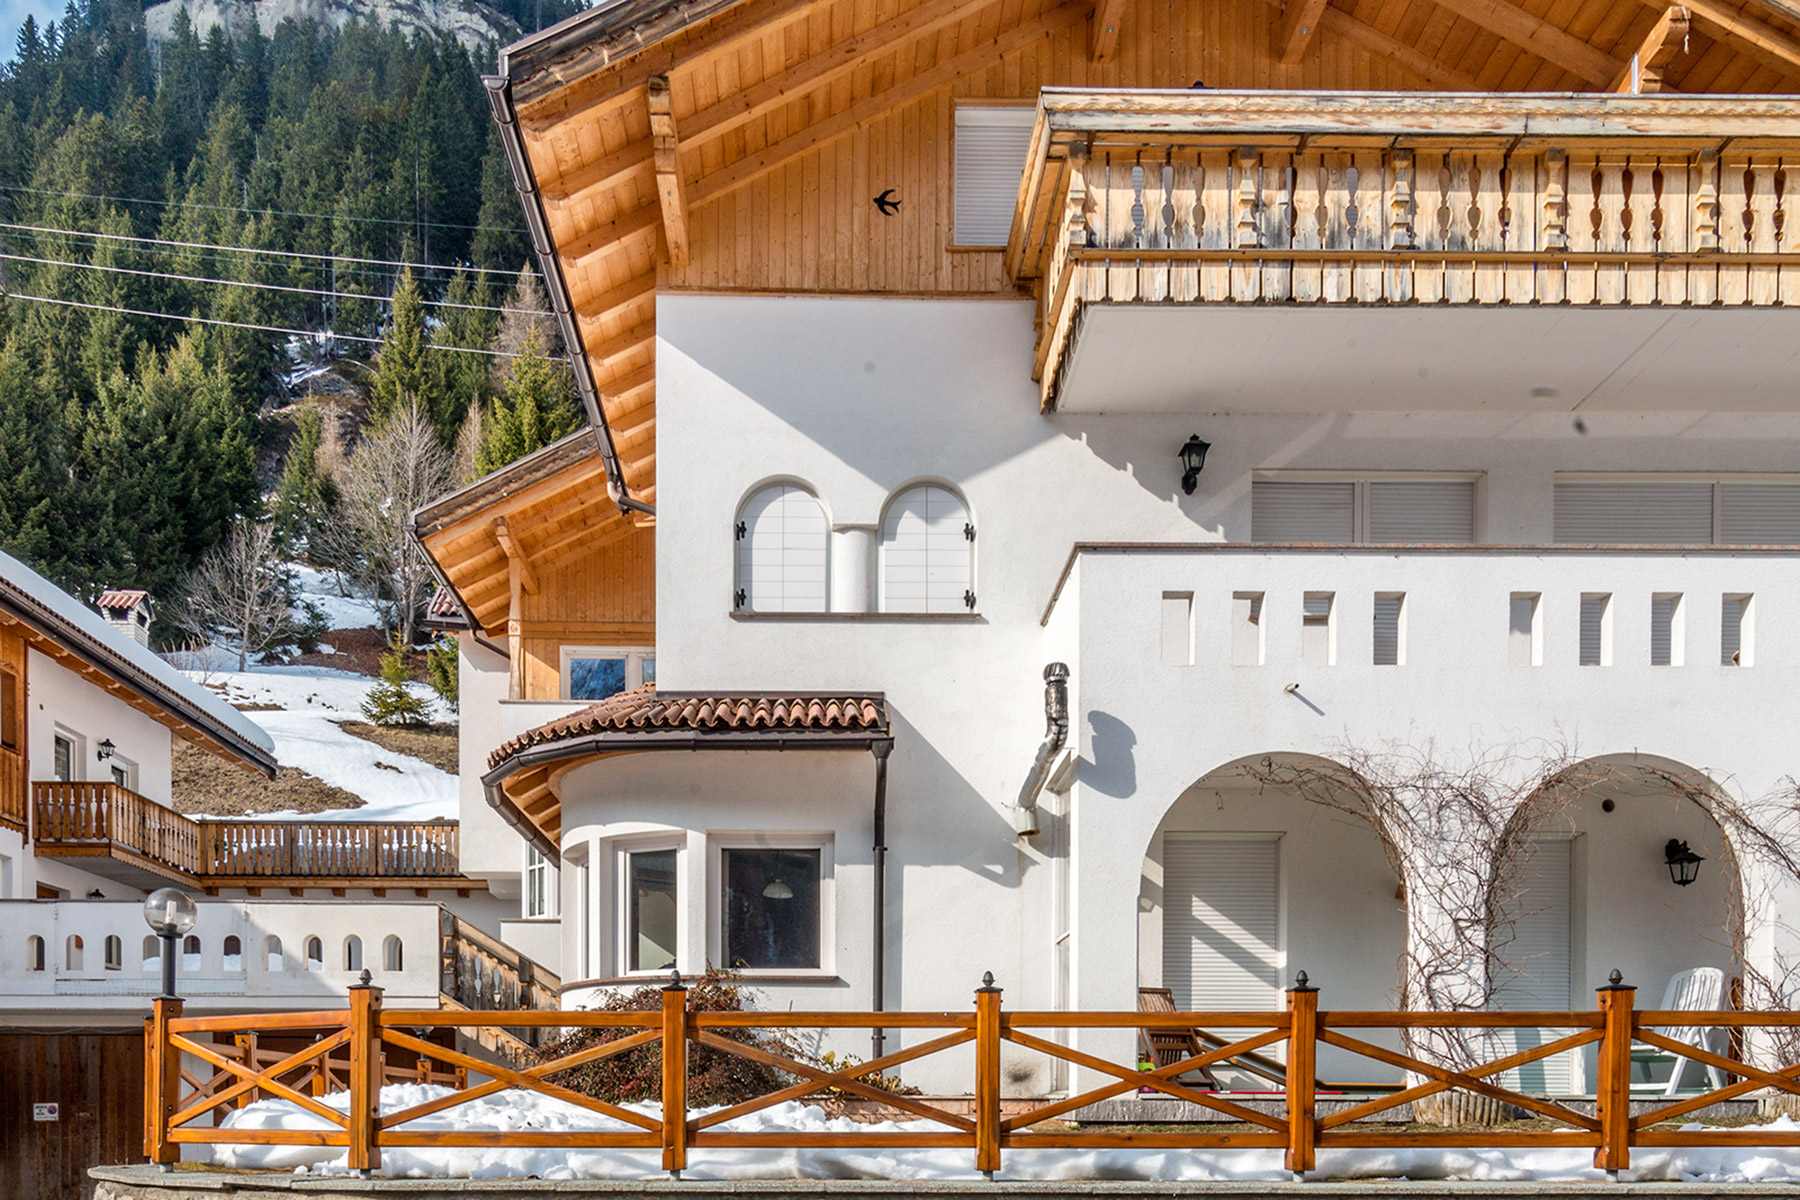 Additional photo for property listing at New construction Villa by famous architect Hermann Kostner Via Alfauro Arabba, Belluno 32020 Italia